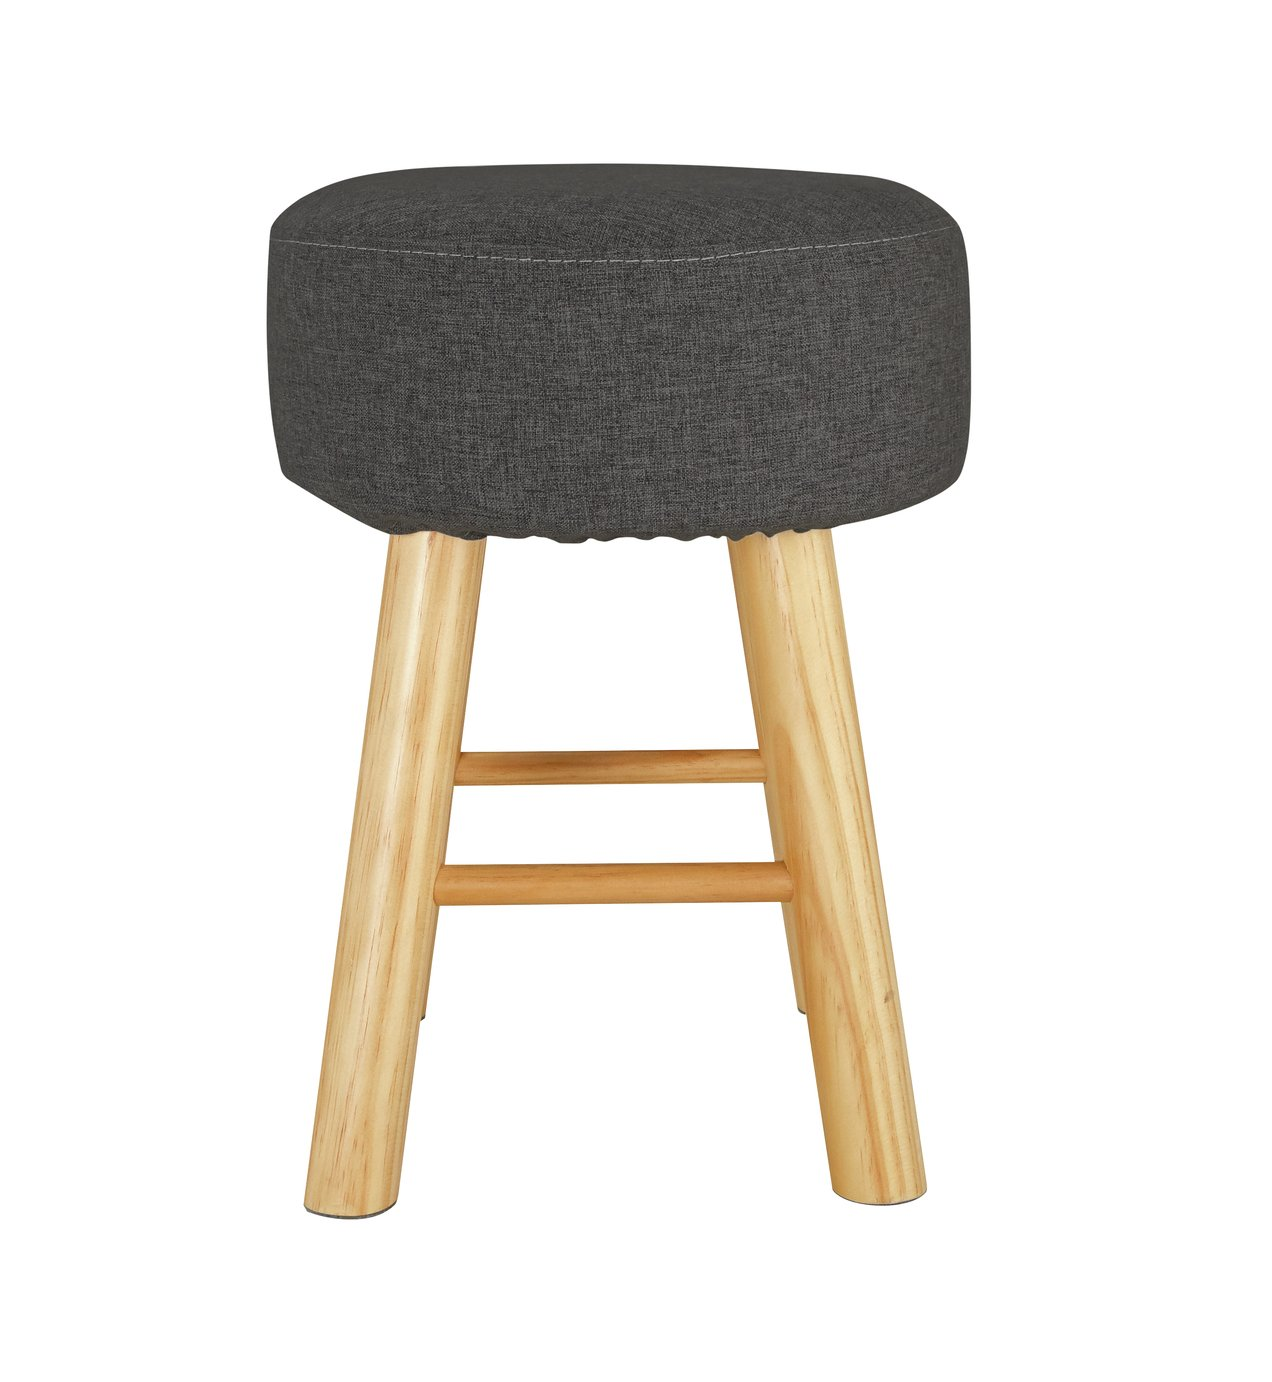 Argos Home Small Fabric Footstool - Charcoal